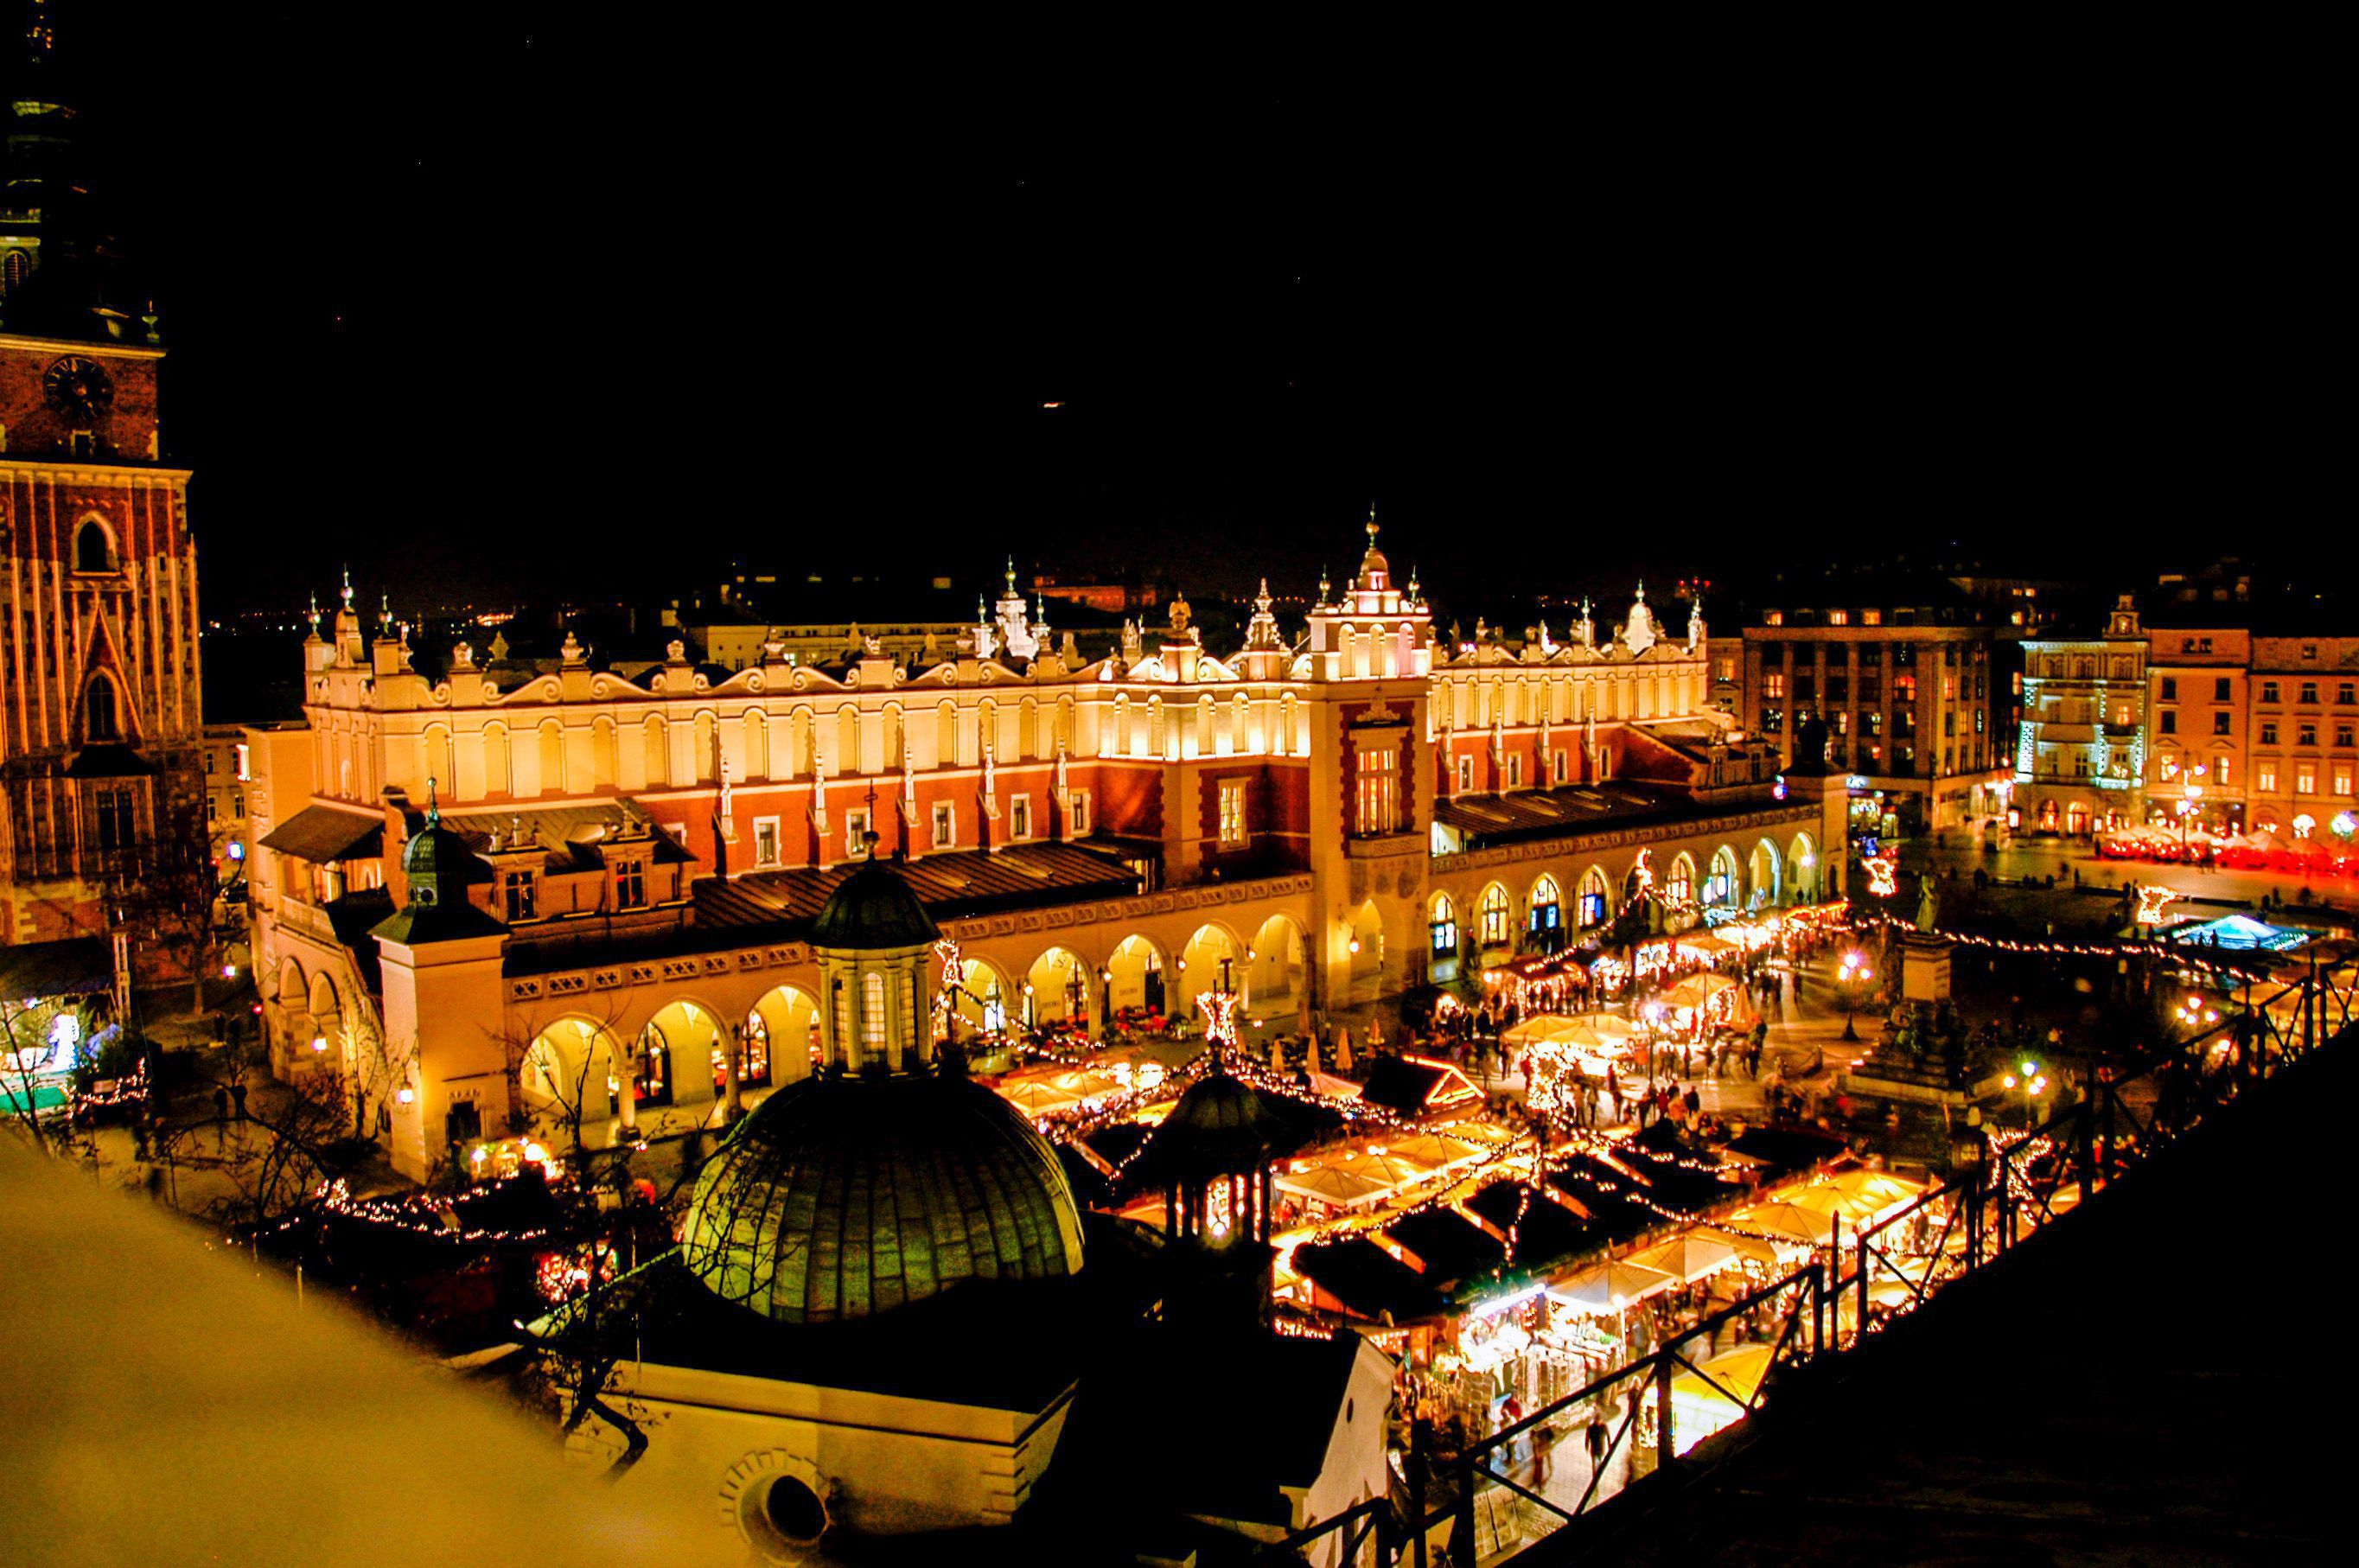 Krakow Wallpapers Images Photos Pictures Backgrounds 2729x1814